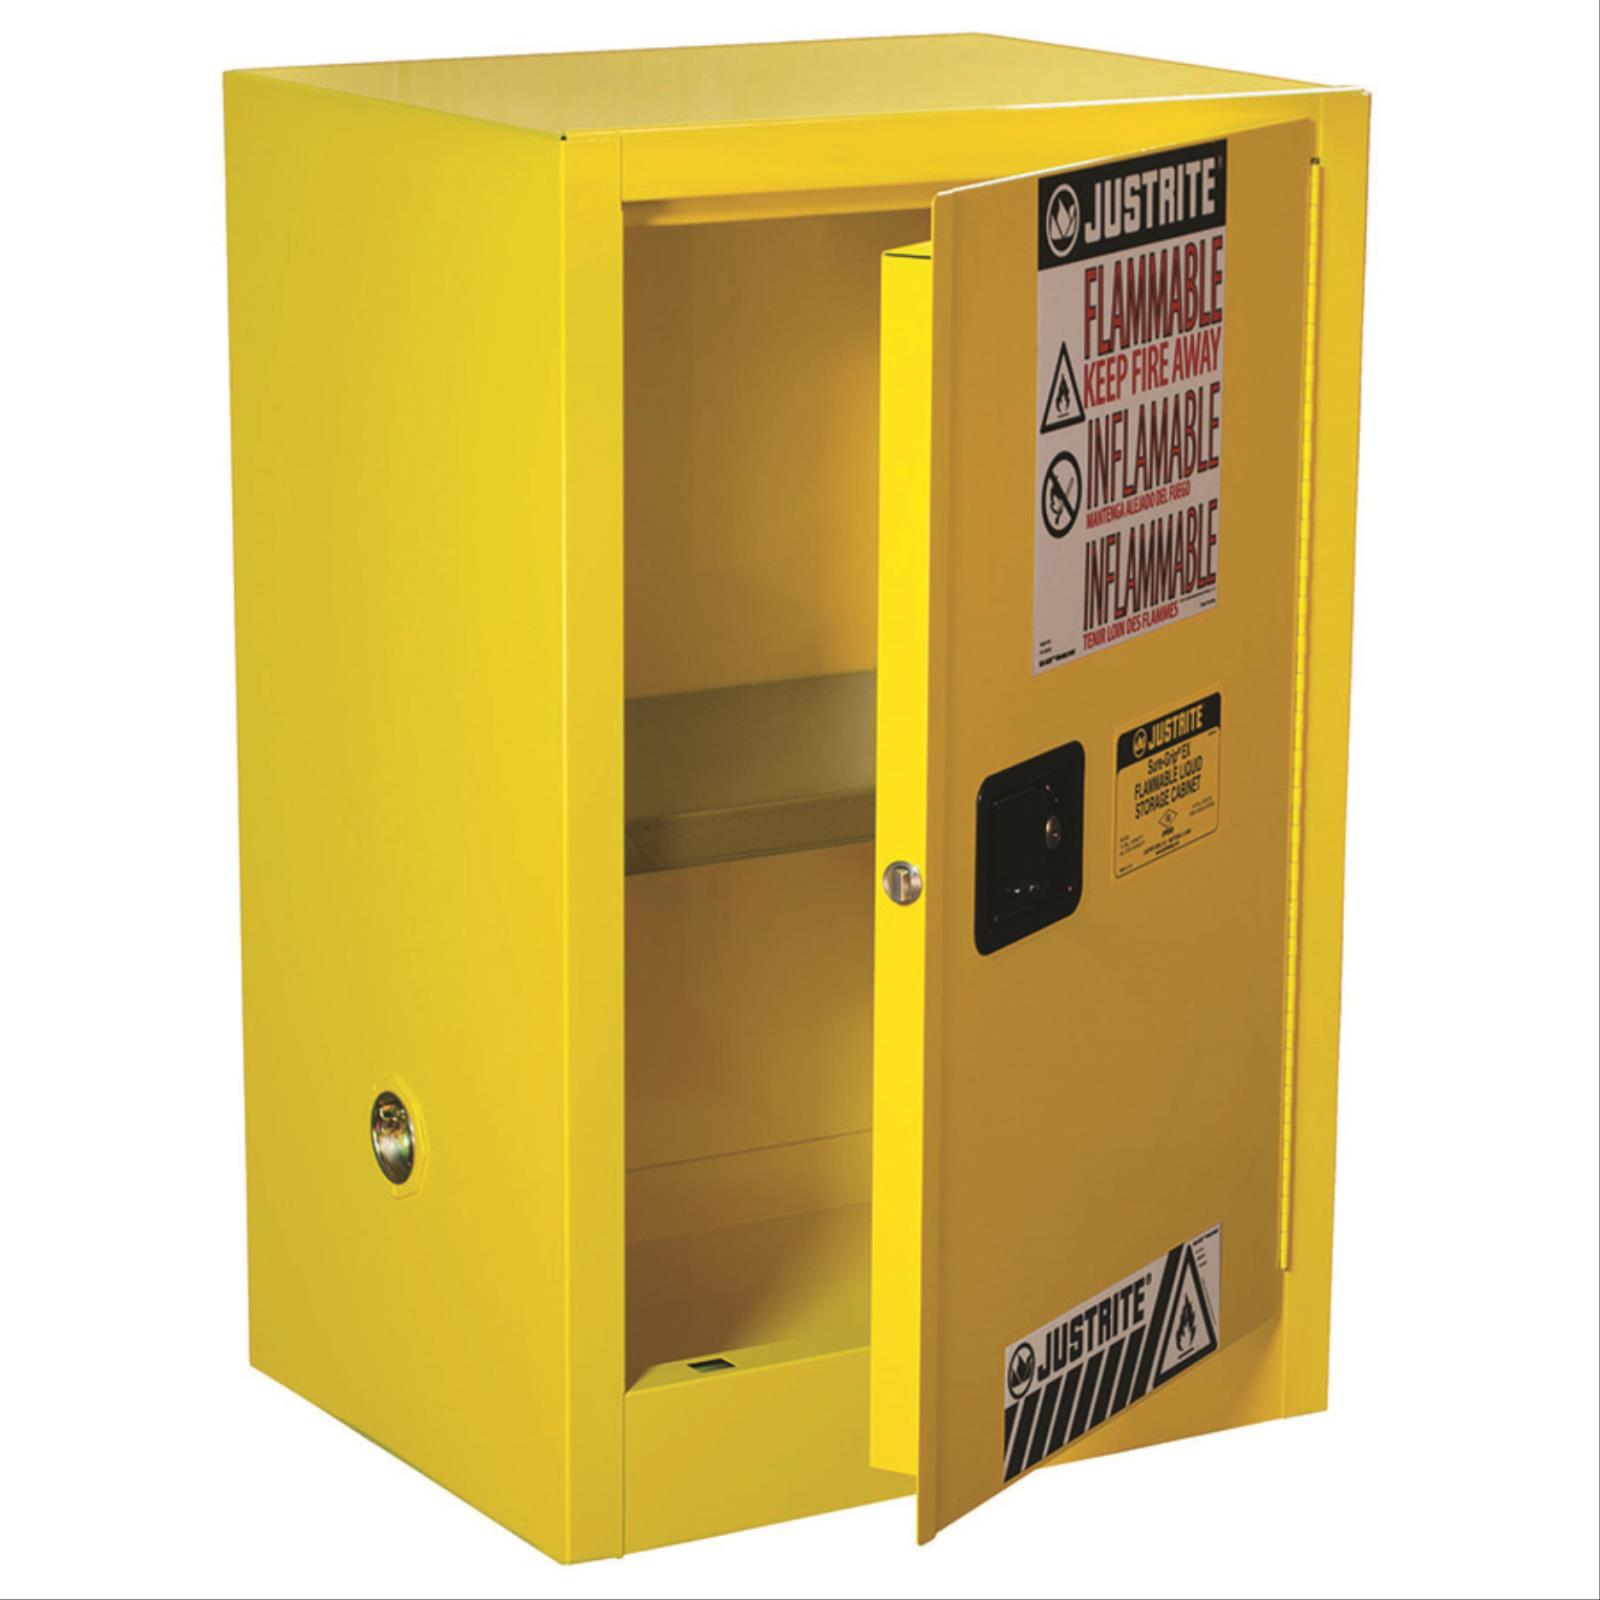 Great Justrite Compact Safety Cabinets